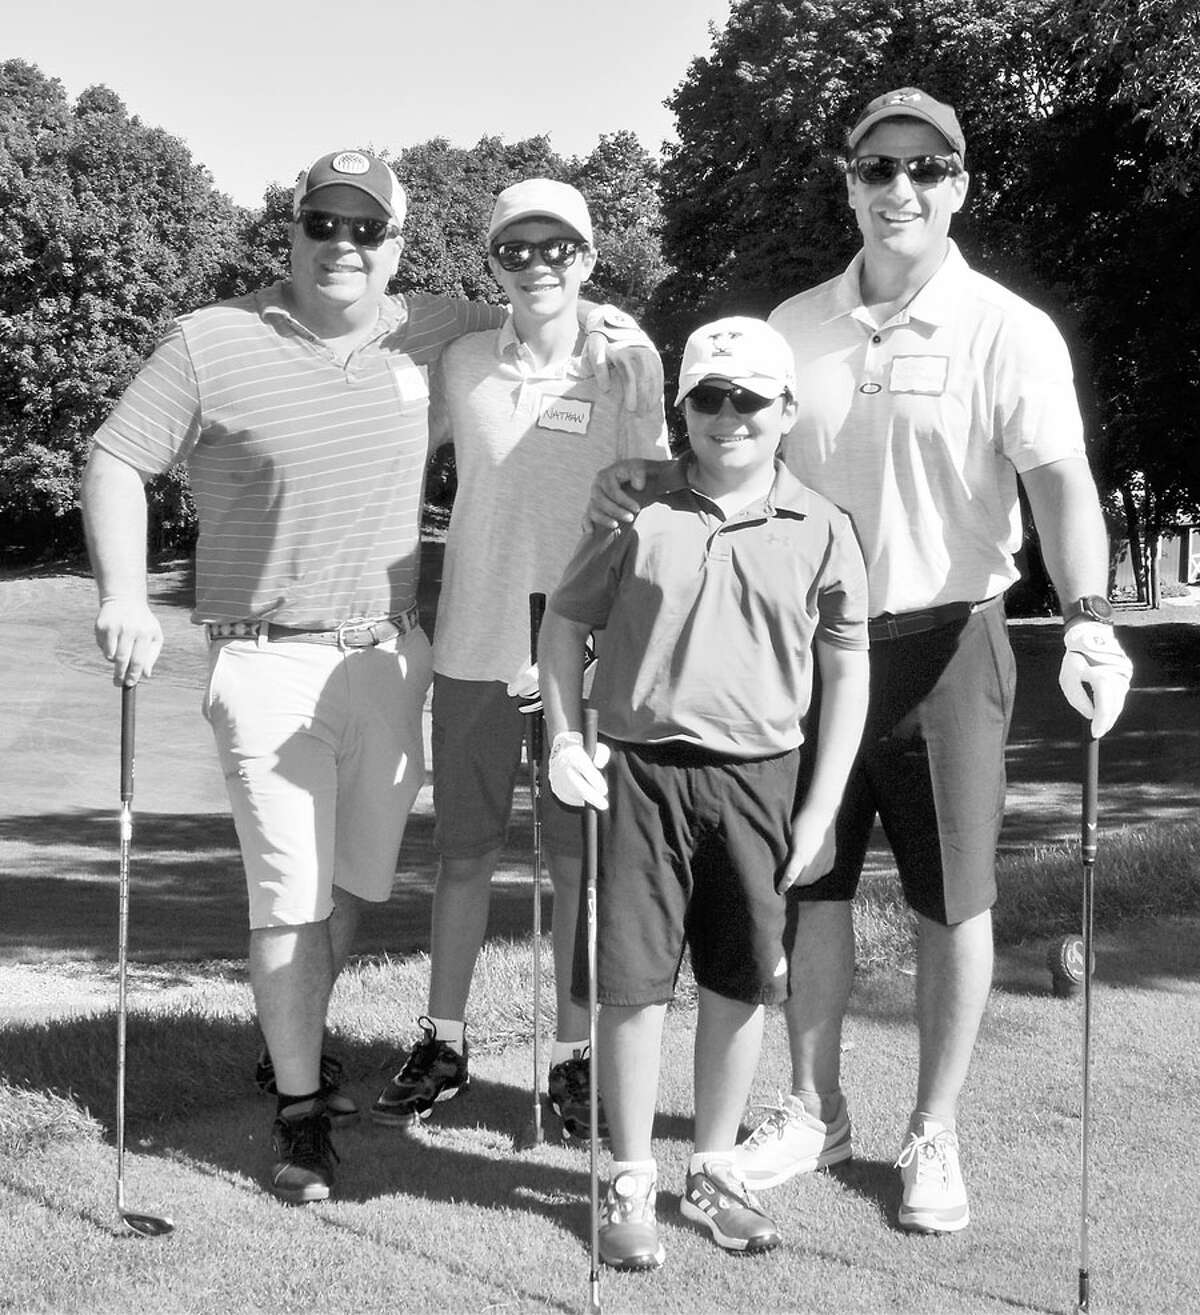 STAR's 9-hole family golf tourney raised $10,000. From left, Mike and Nathan Sieckhaus and John and Jason Konidaris shown at the recent tournament. - Contributed photo